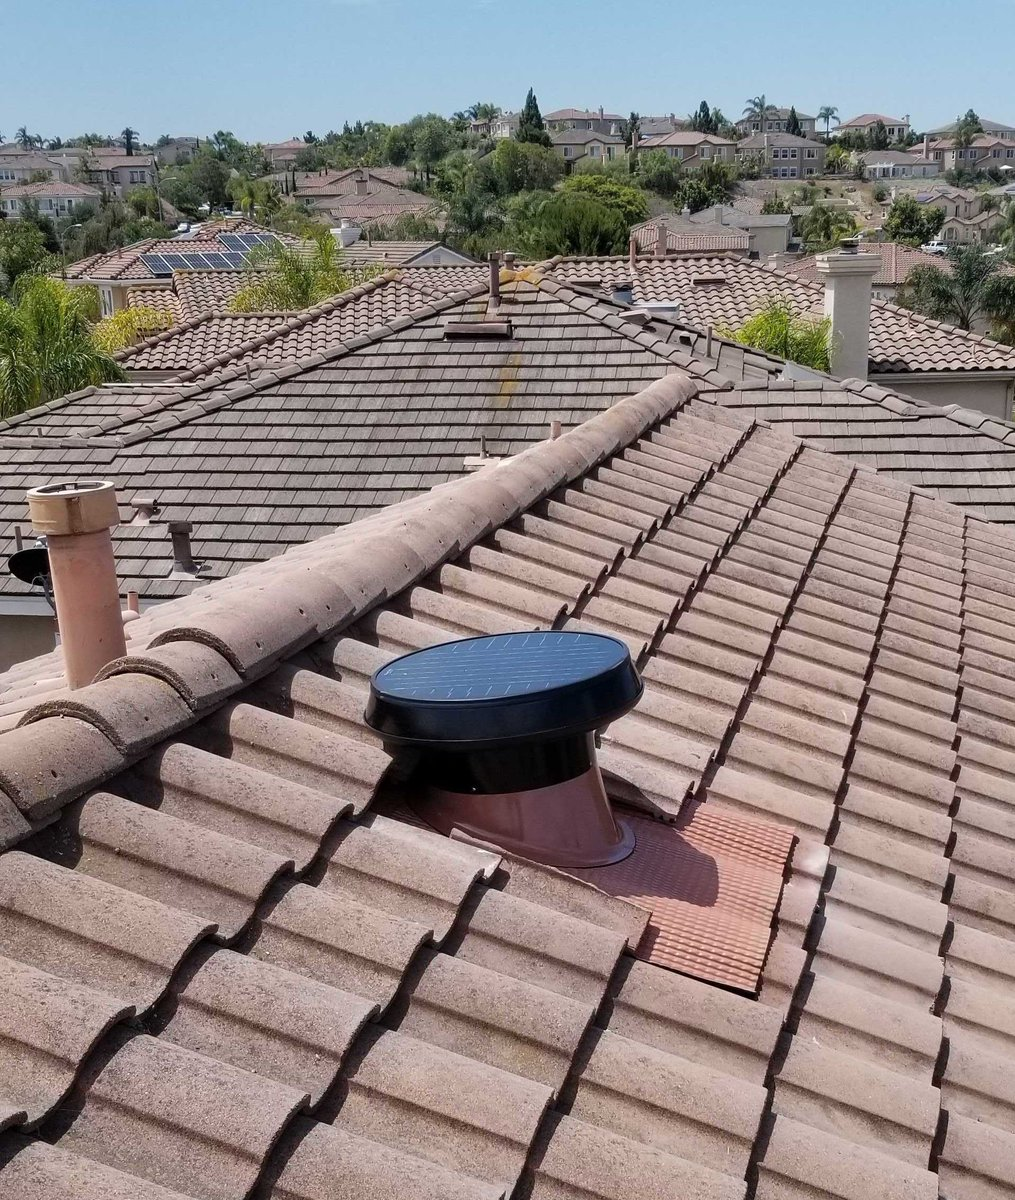 Tile roof? No problem! We can mount your #SolarAtticFan on ALL roof types #SolatubeHome #AtticFan #EnergyEfficiency #HomeImprovementpic.twitter.com/yDfDfnhM2E